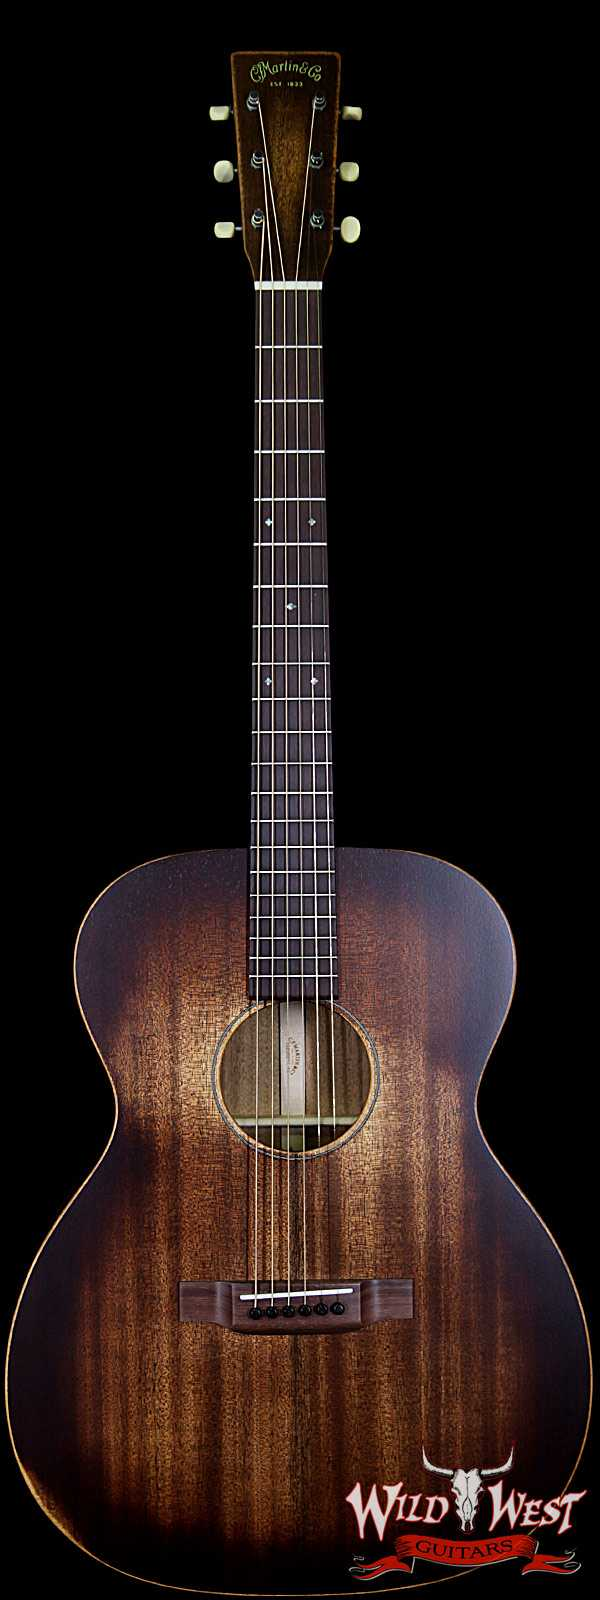 Martin 15 Series 000-15M StreetMaster Acoustic Guitar